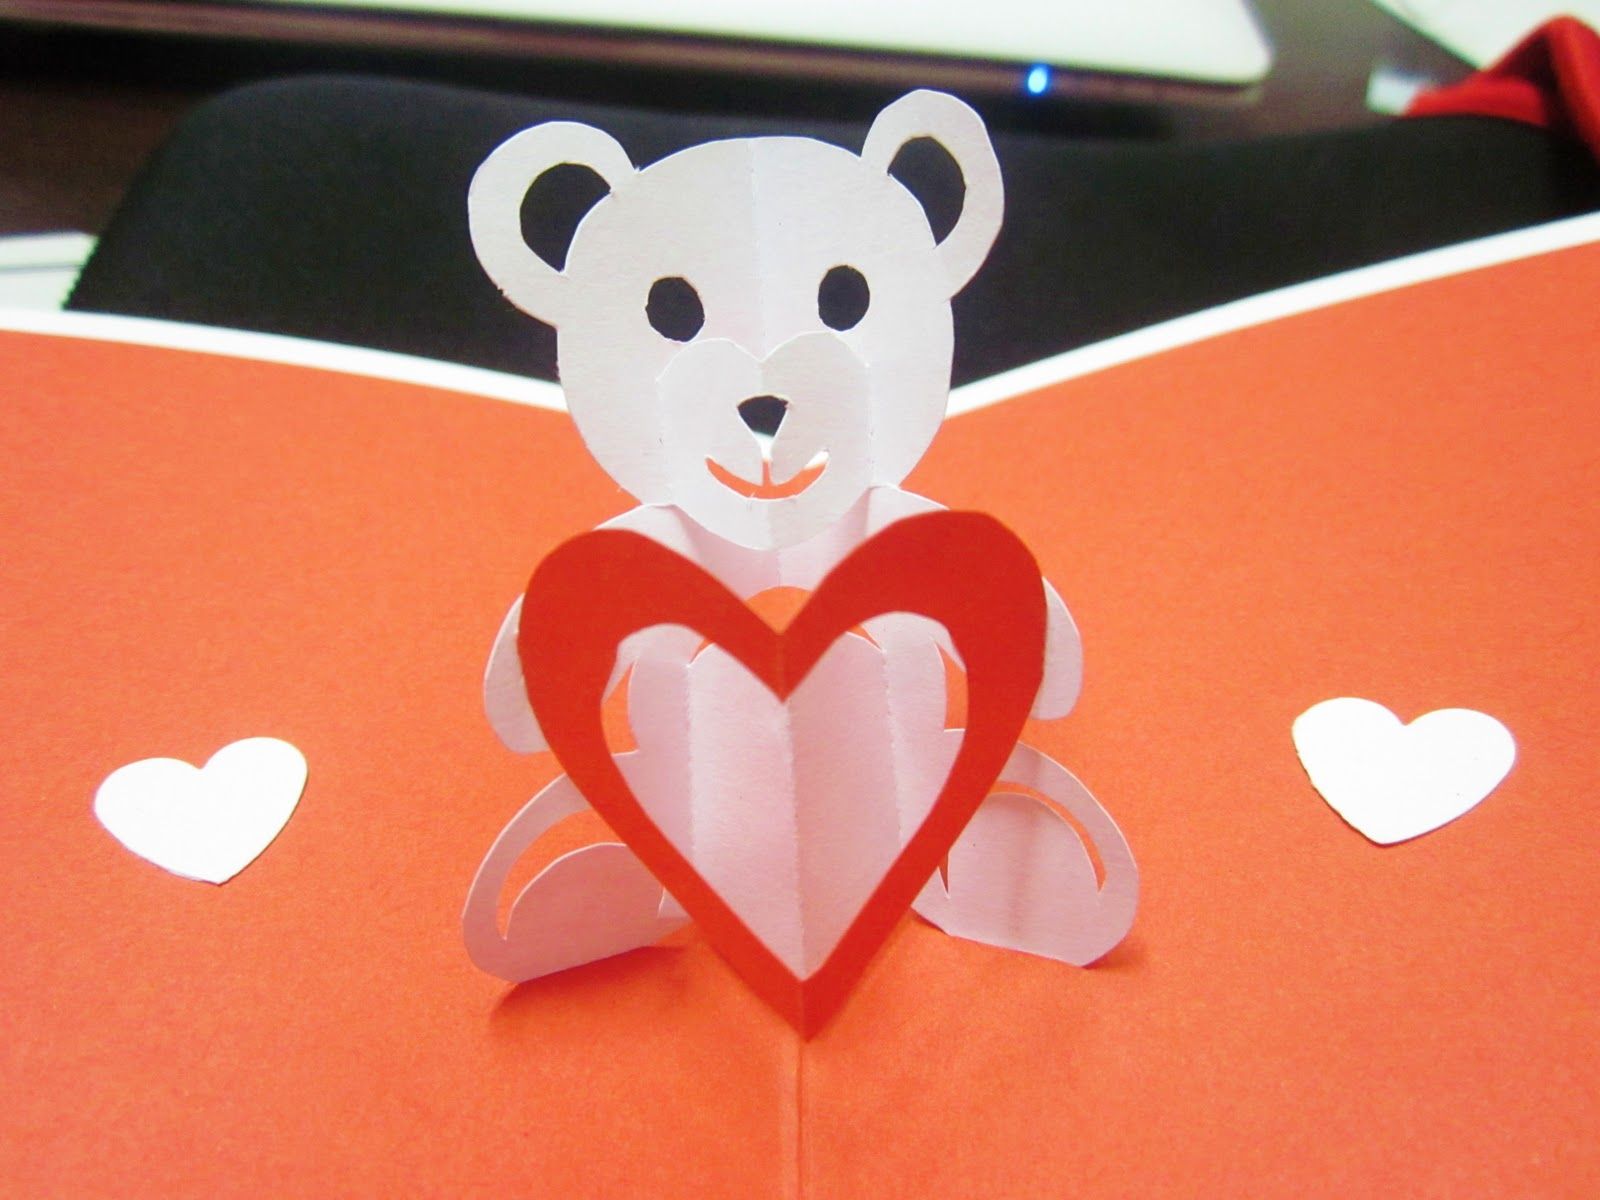 Teddy bear of love pop up card template search results for Teddy bear pop up card template free